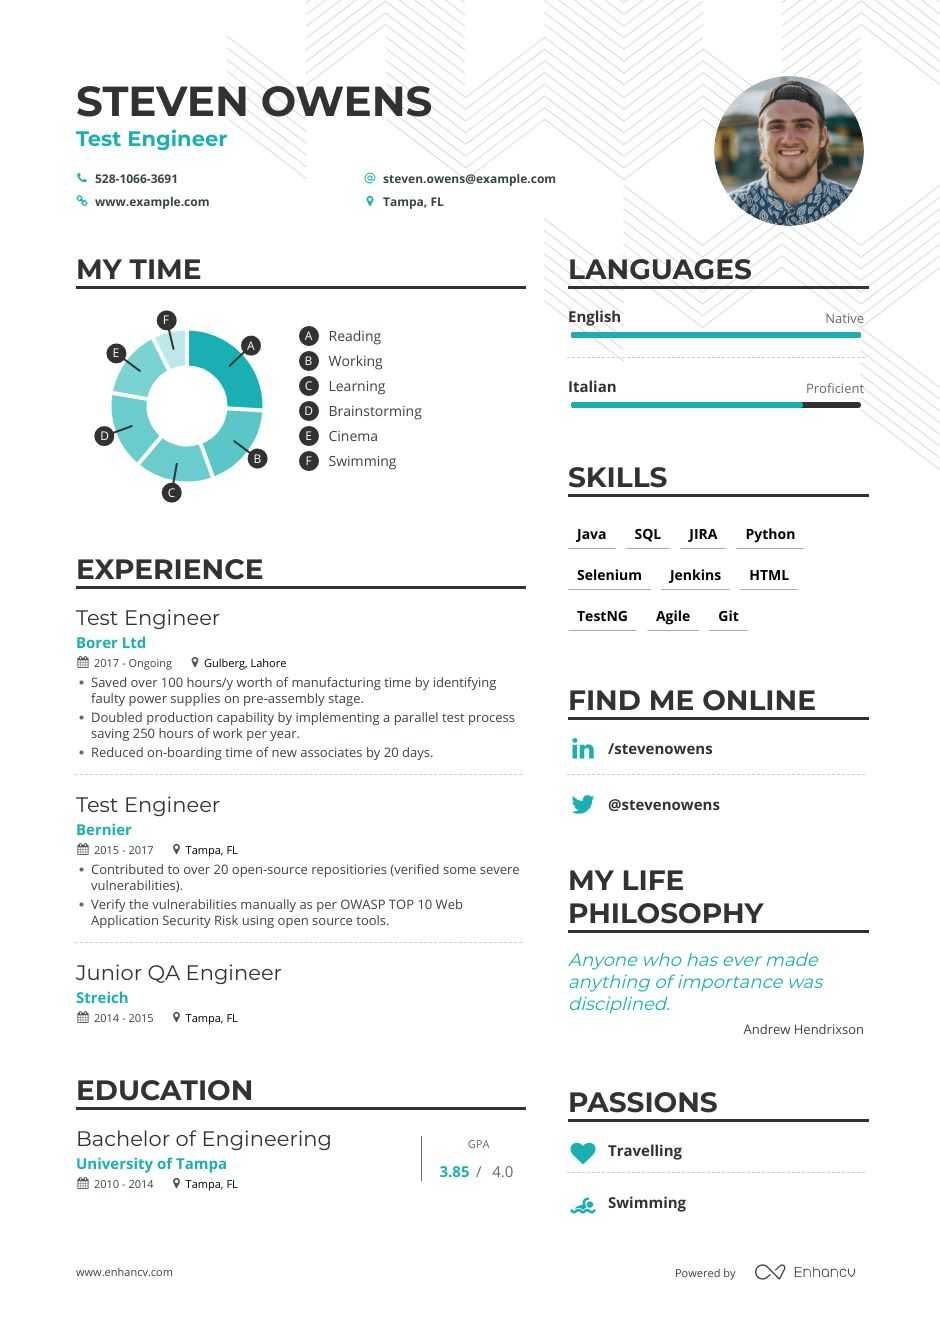 top test engineer resume examples expert tips enhancv automation tester most effective Resume Automation Tester Resume